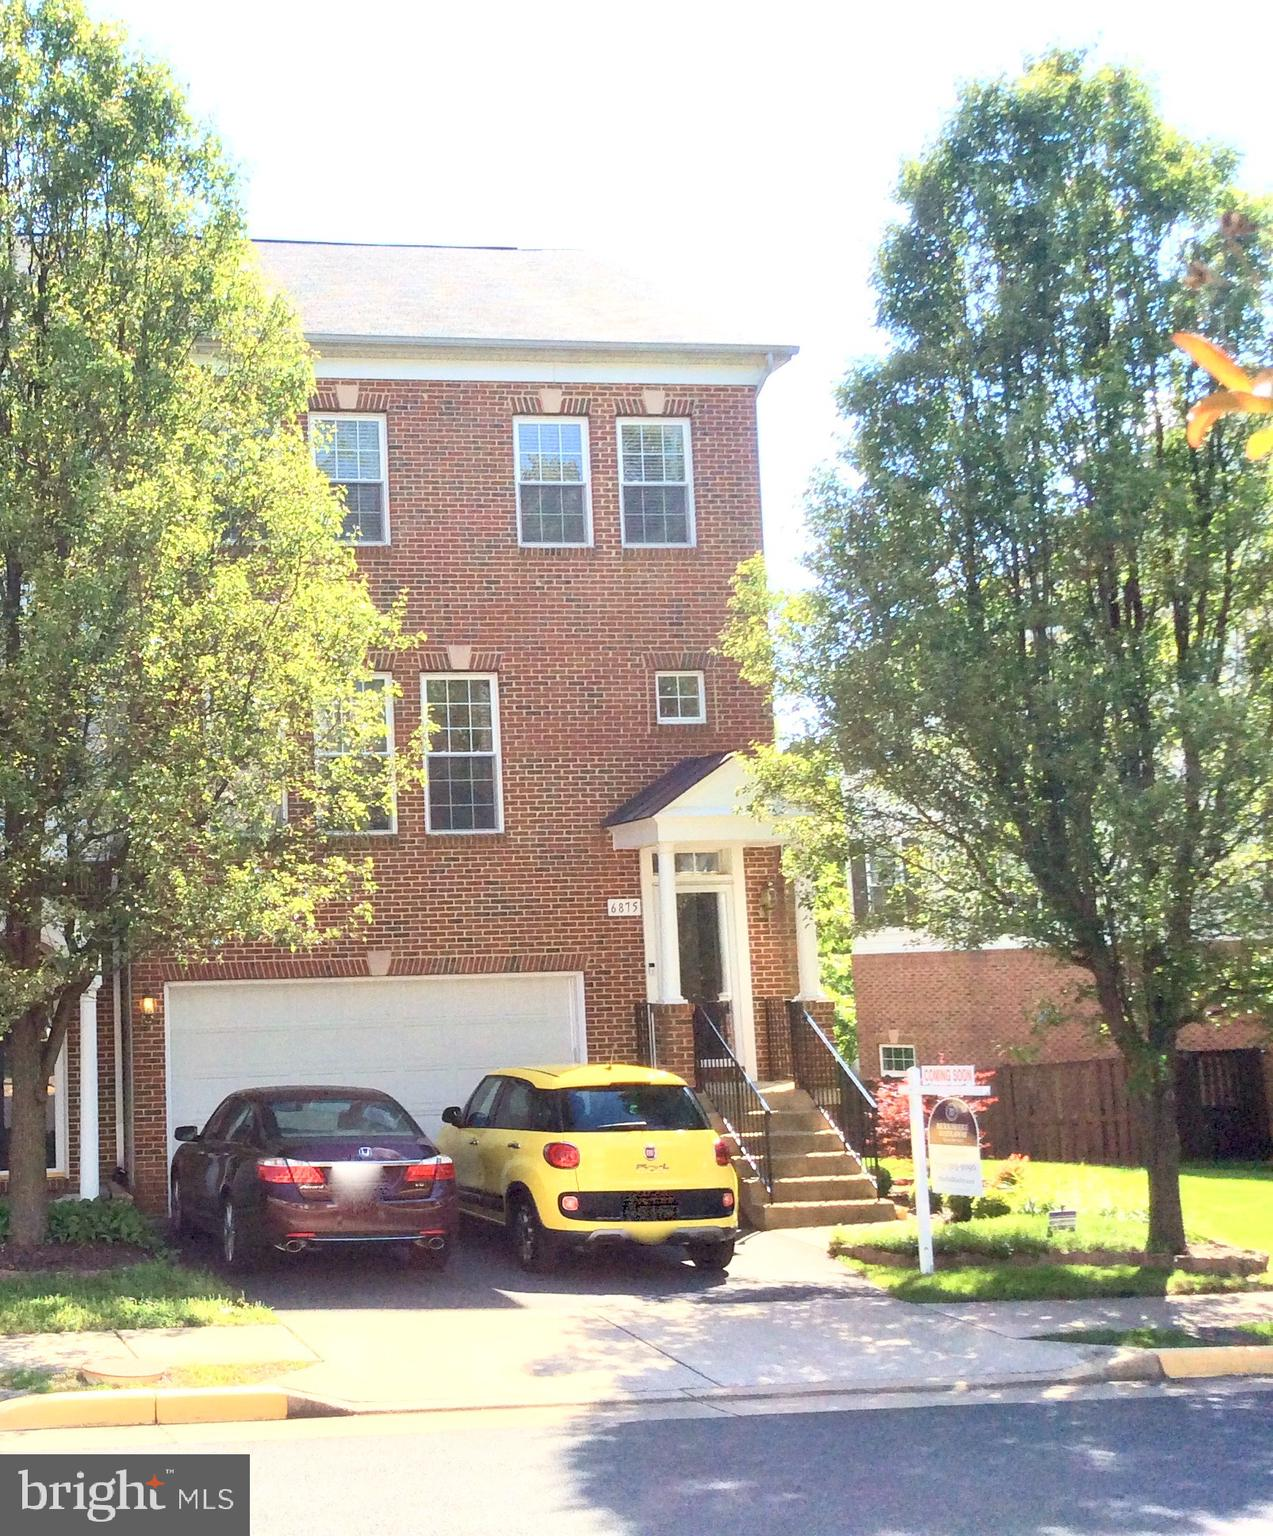 Beautiful, Well Maintained, Brick Front, End Unit Town Home that backs-up to woods for great privacy while enjoying the deck.  The home is complete with 3Bedrooms, 3.5Bathrooms, Formal Dining Room, Breakfast Area, Living Room, lower level family room w/13 foot ceilings and fireplace with upgraded hardwood flooring on the first level. The upstairs features an amazing upgraded Master Bedroom and Bath, Laundry Room, 2 additional spacious Bedrooms and full bath.  The Kitchen has updated/upgraded beautiful 42 inch cabinets, appliances, backsplash, and breakfast bar.  2 Car Garage with extra storage.  Minutes to Metro, Kingstowne, 495, 395 and 95.  Lock Box on front door.  Due to COVID-19 request a maximum of 3 people view the home at a time.